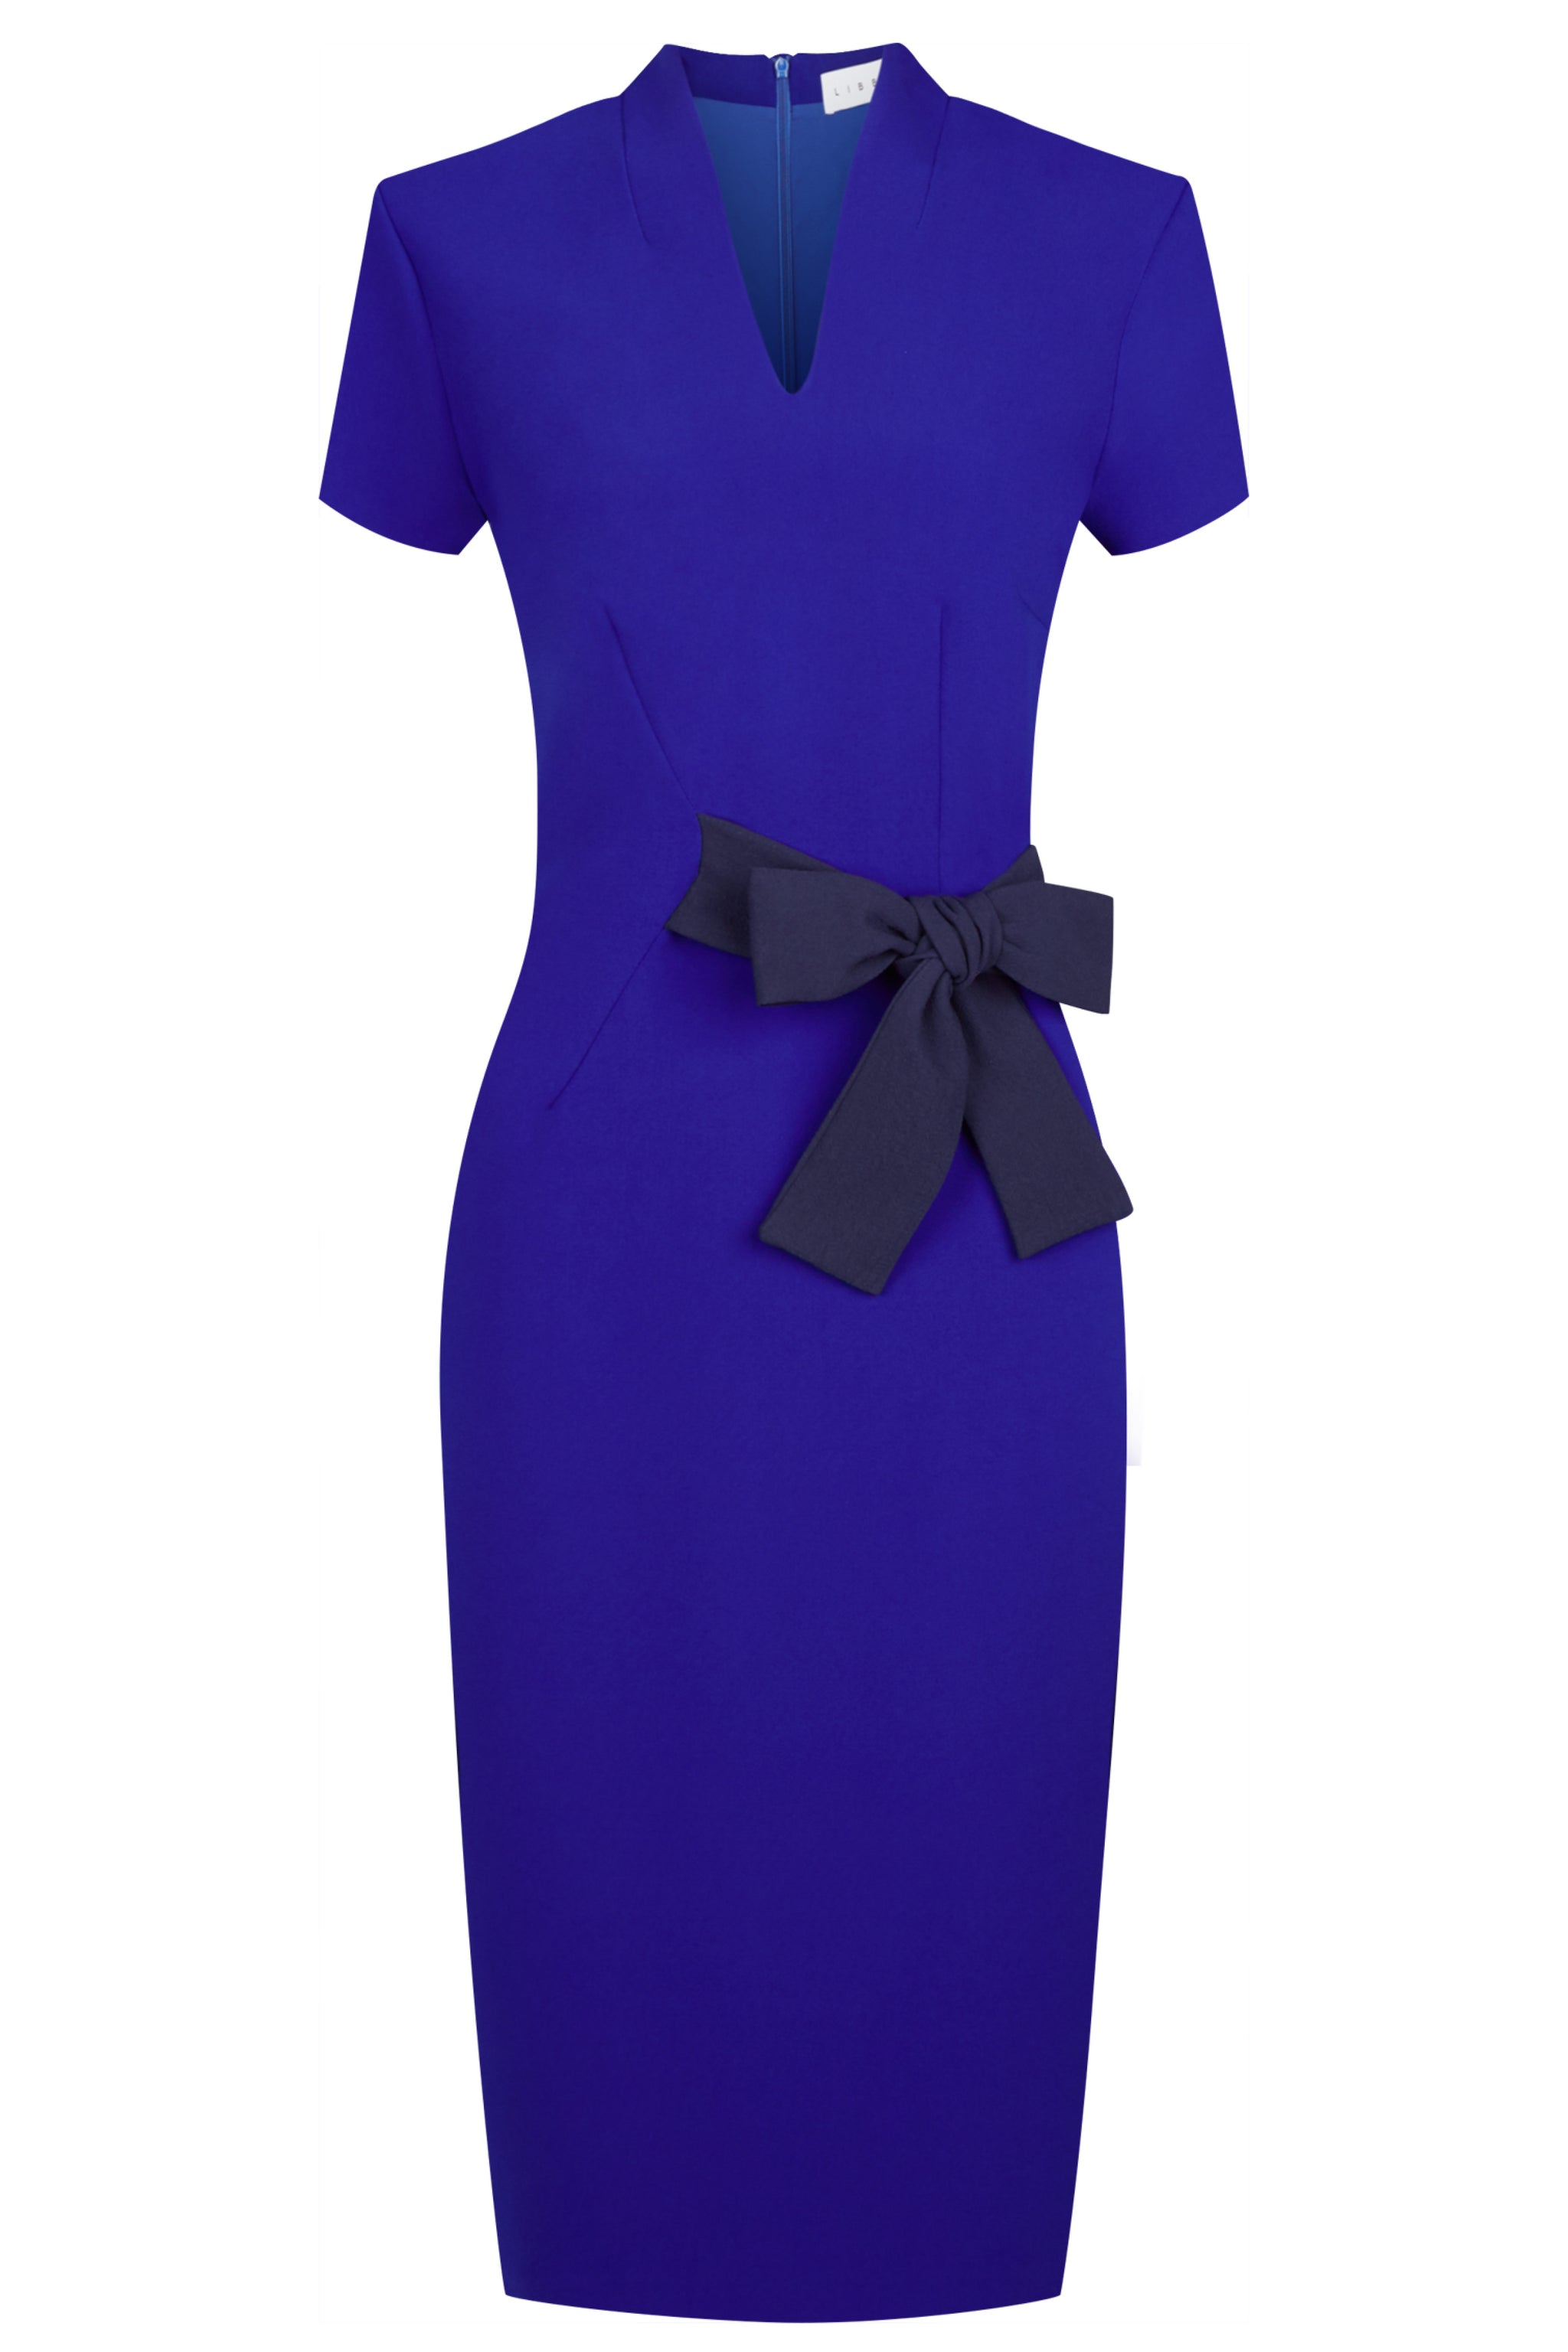 Dartmouth Cobalt & Navy Dress